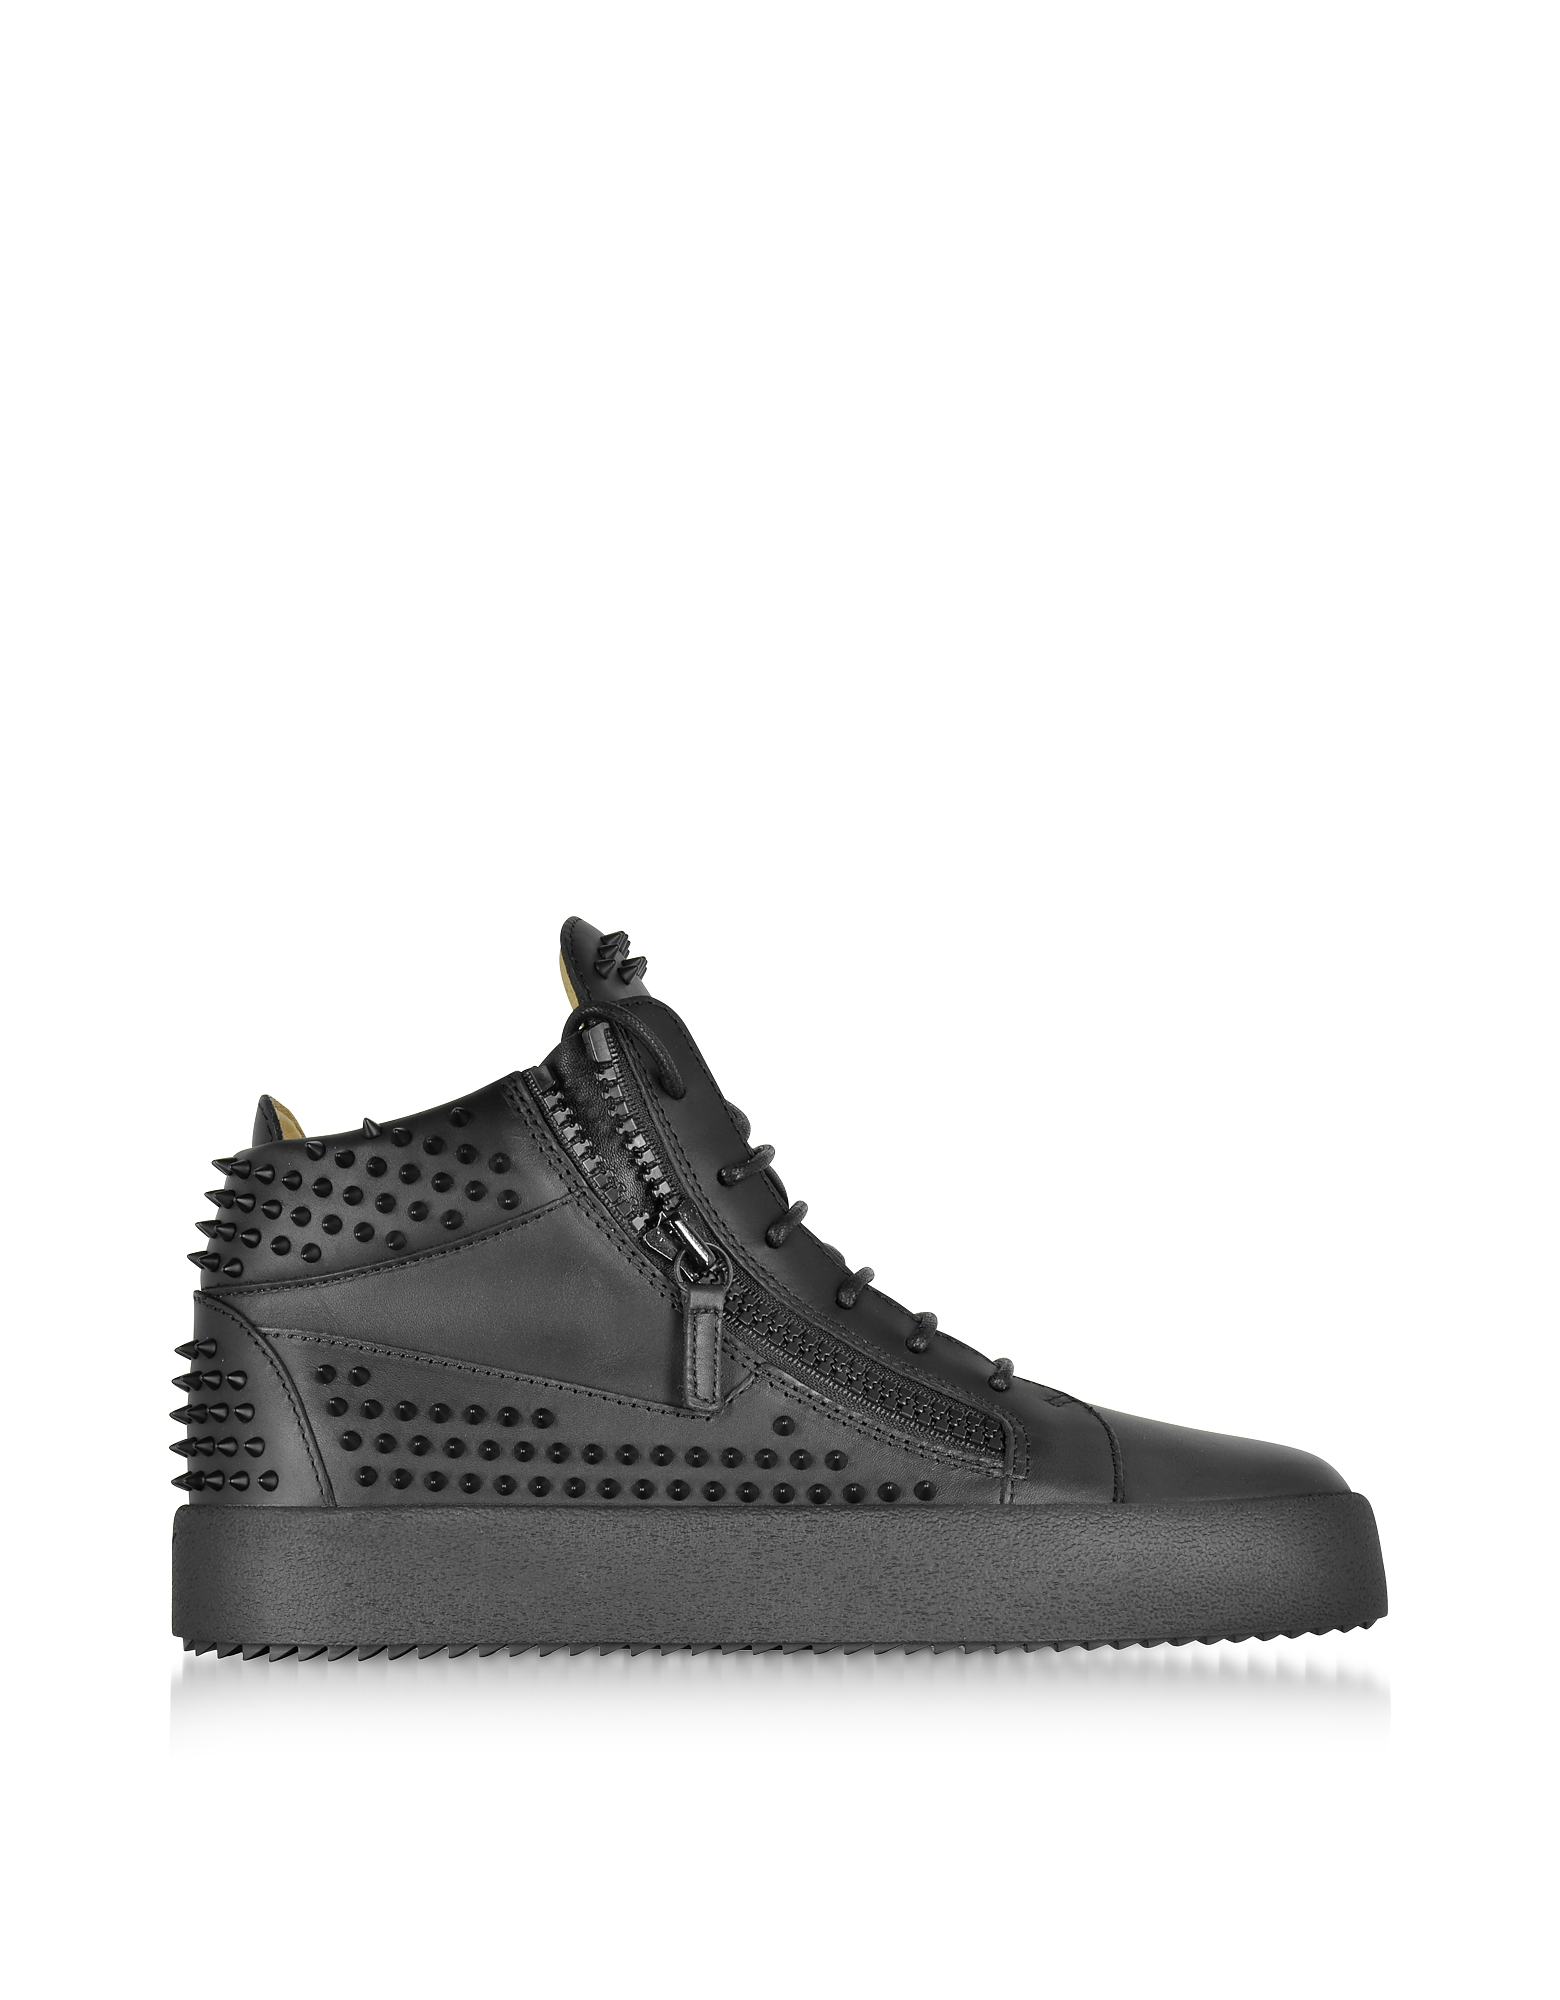 Giuseppe Zanotti Shoes, Black Studded Leather High Top Sneakers